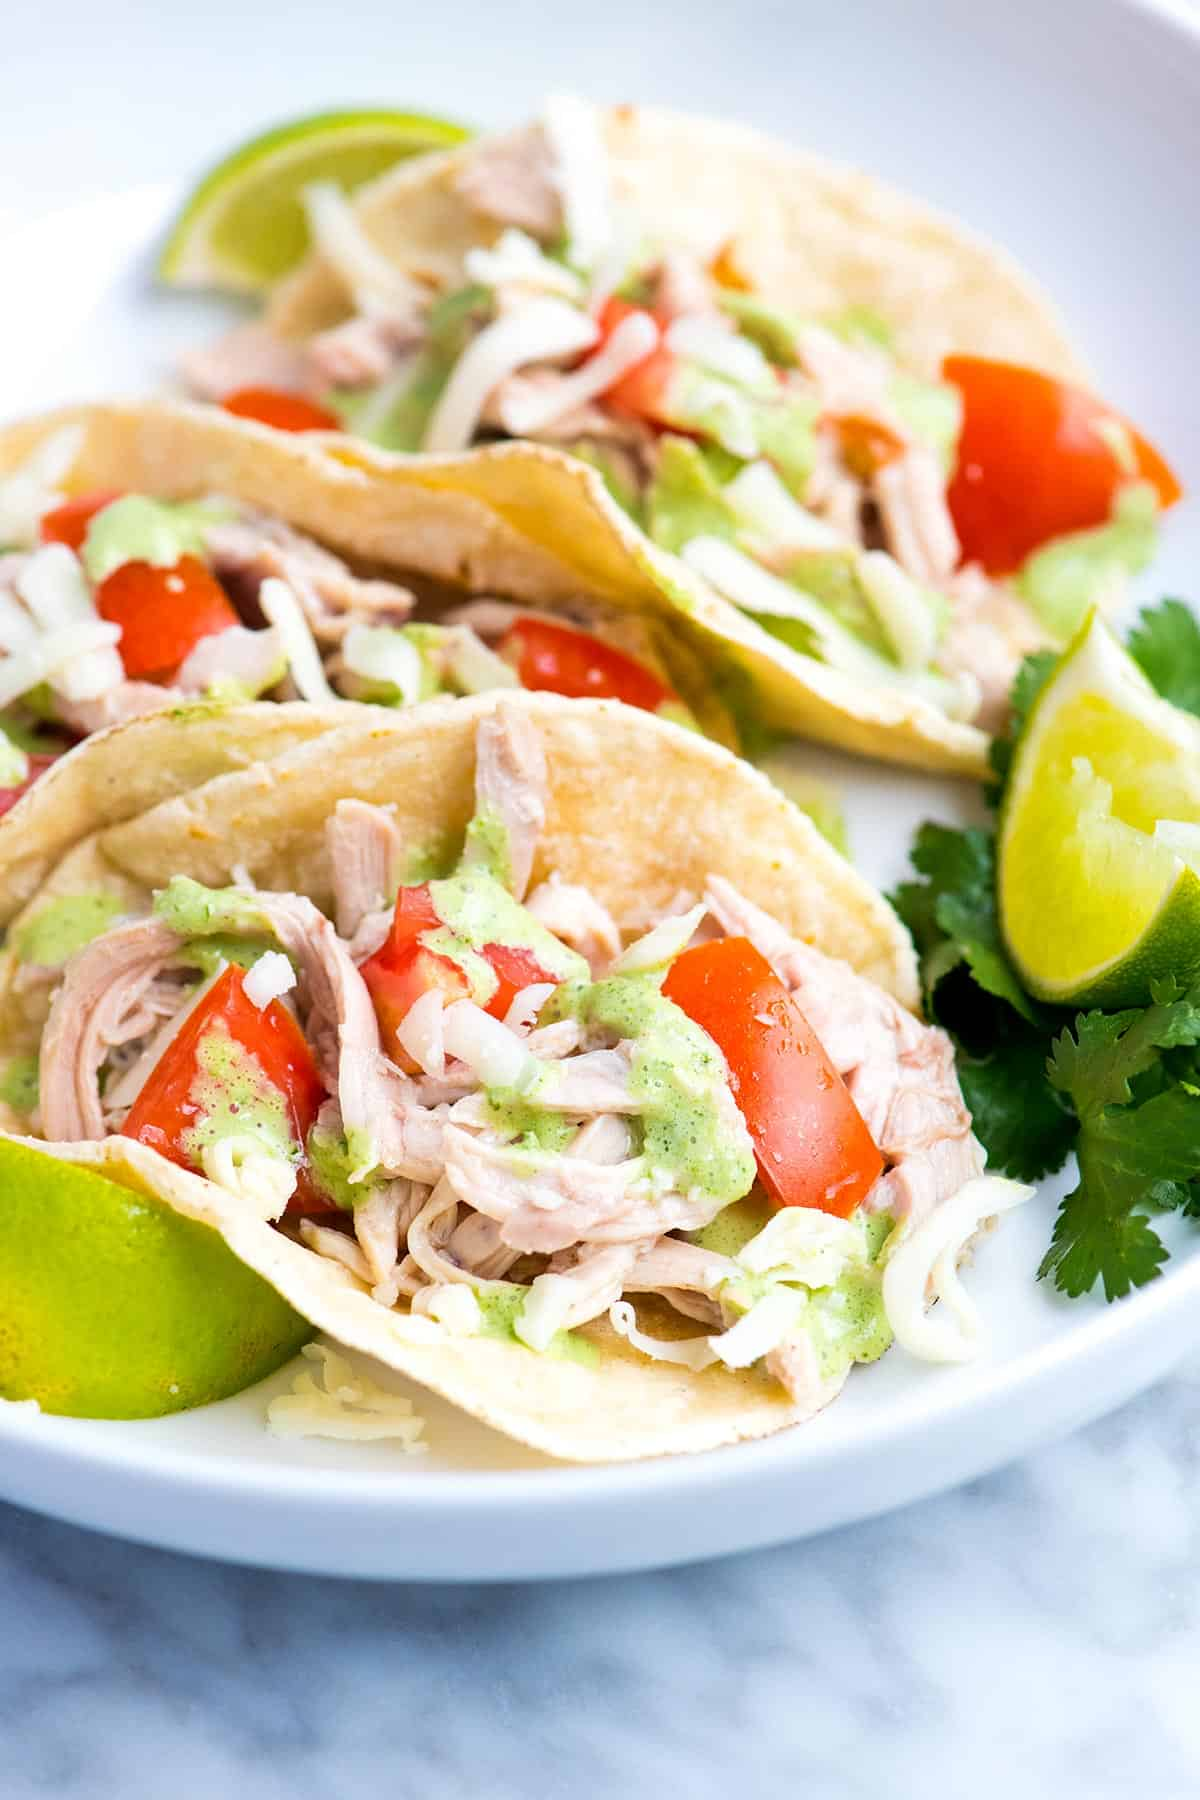 This easy shredded chicken tacos recipe is full of flavor thanks to well seasoned chicken and a bright and creamy cilantro sauce.